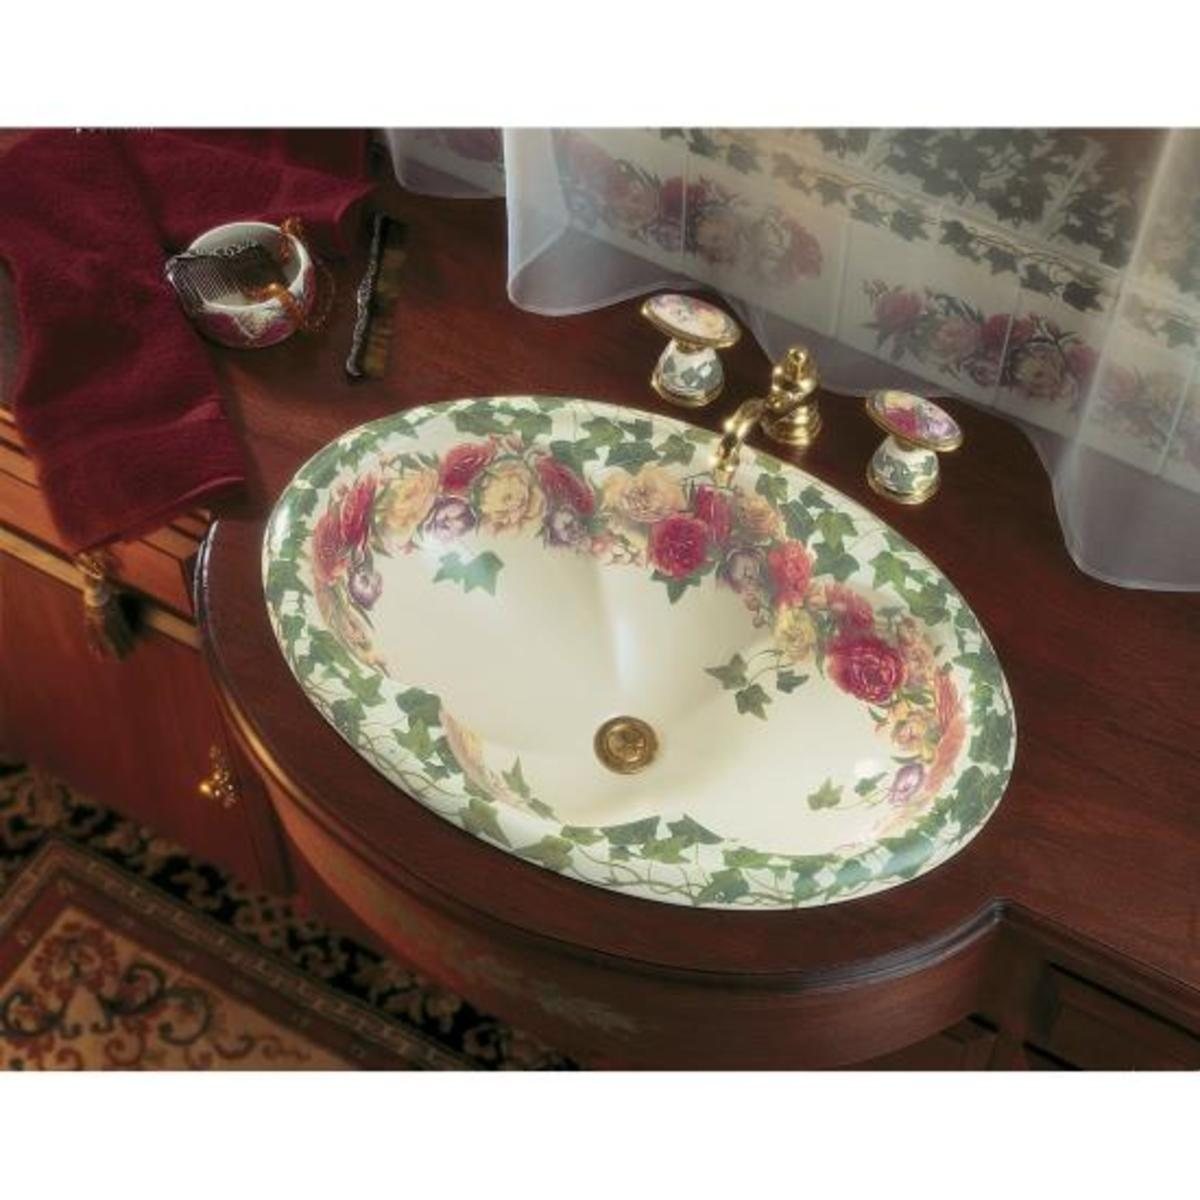 floral sink with pink flowers